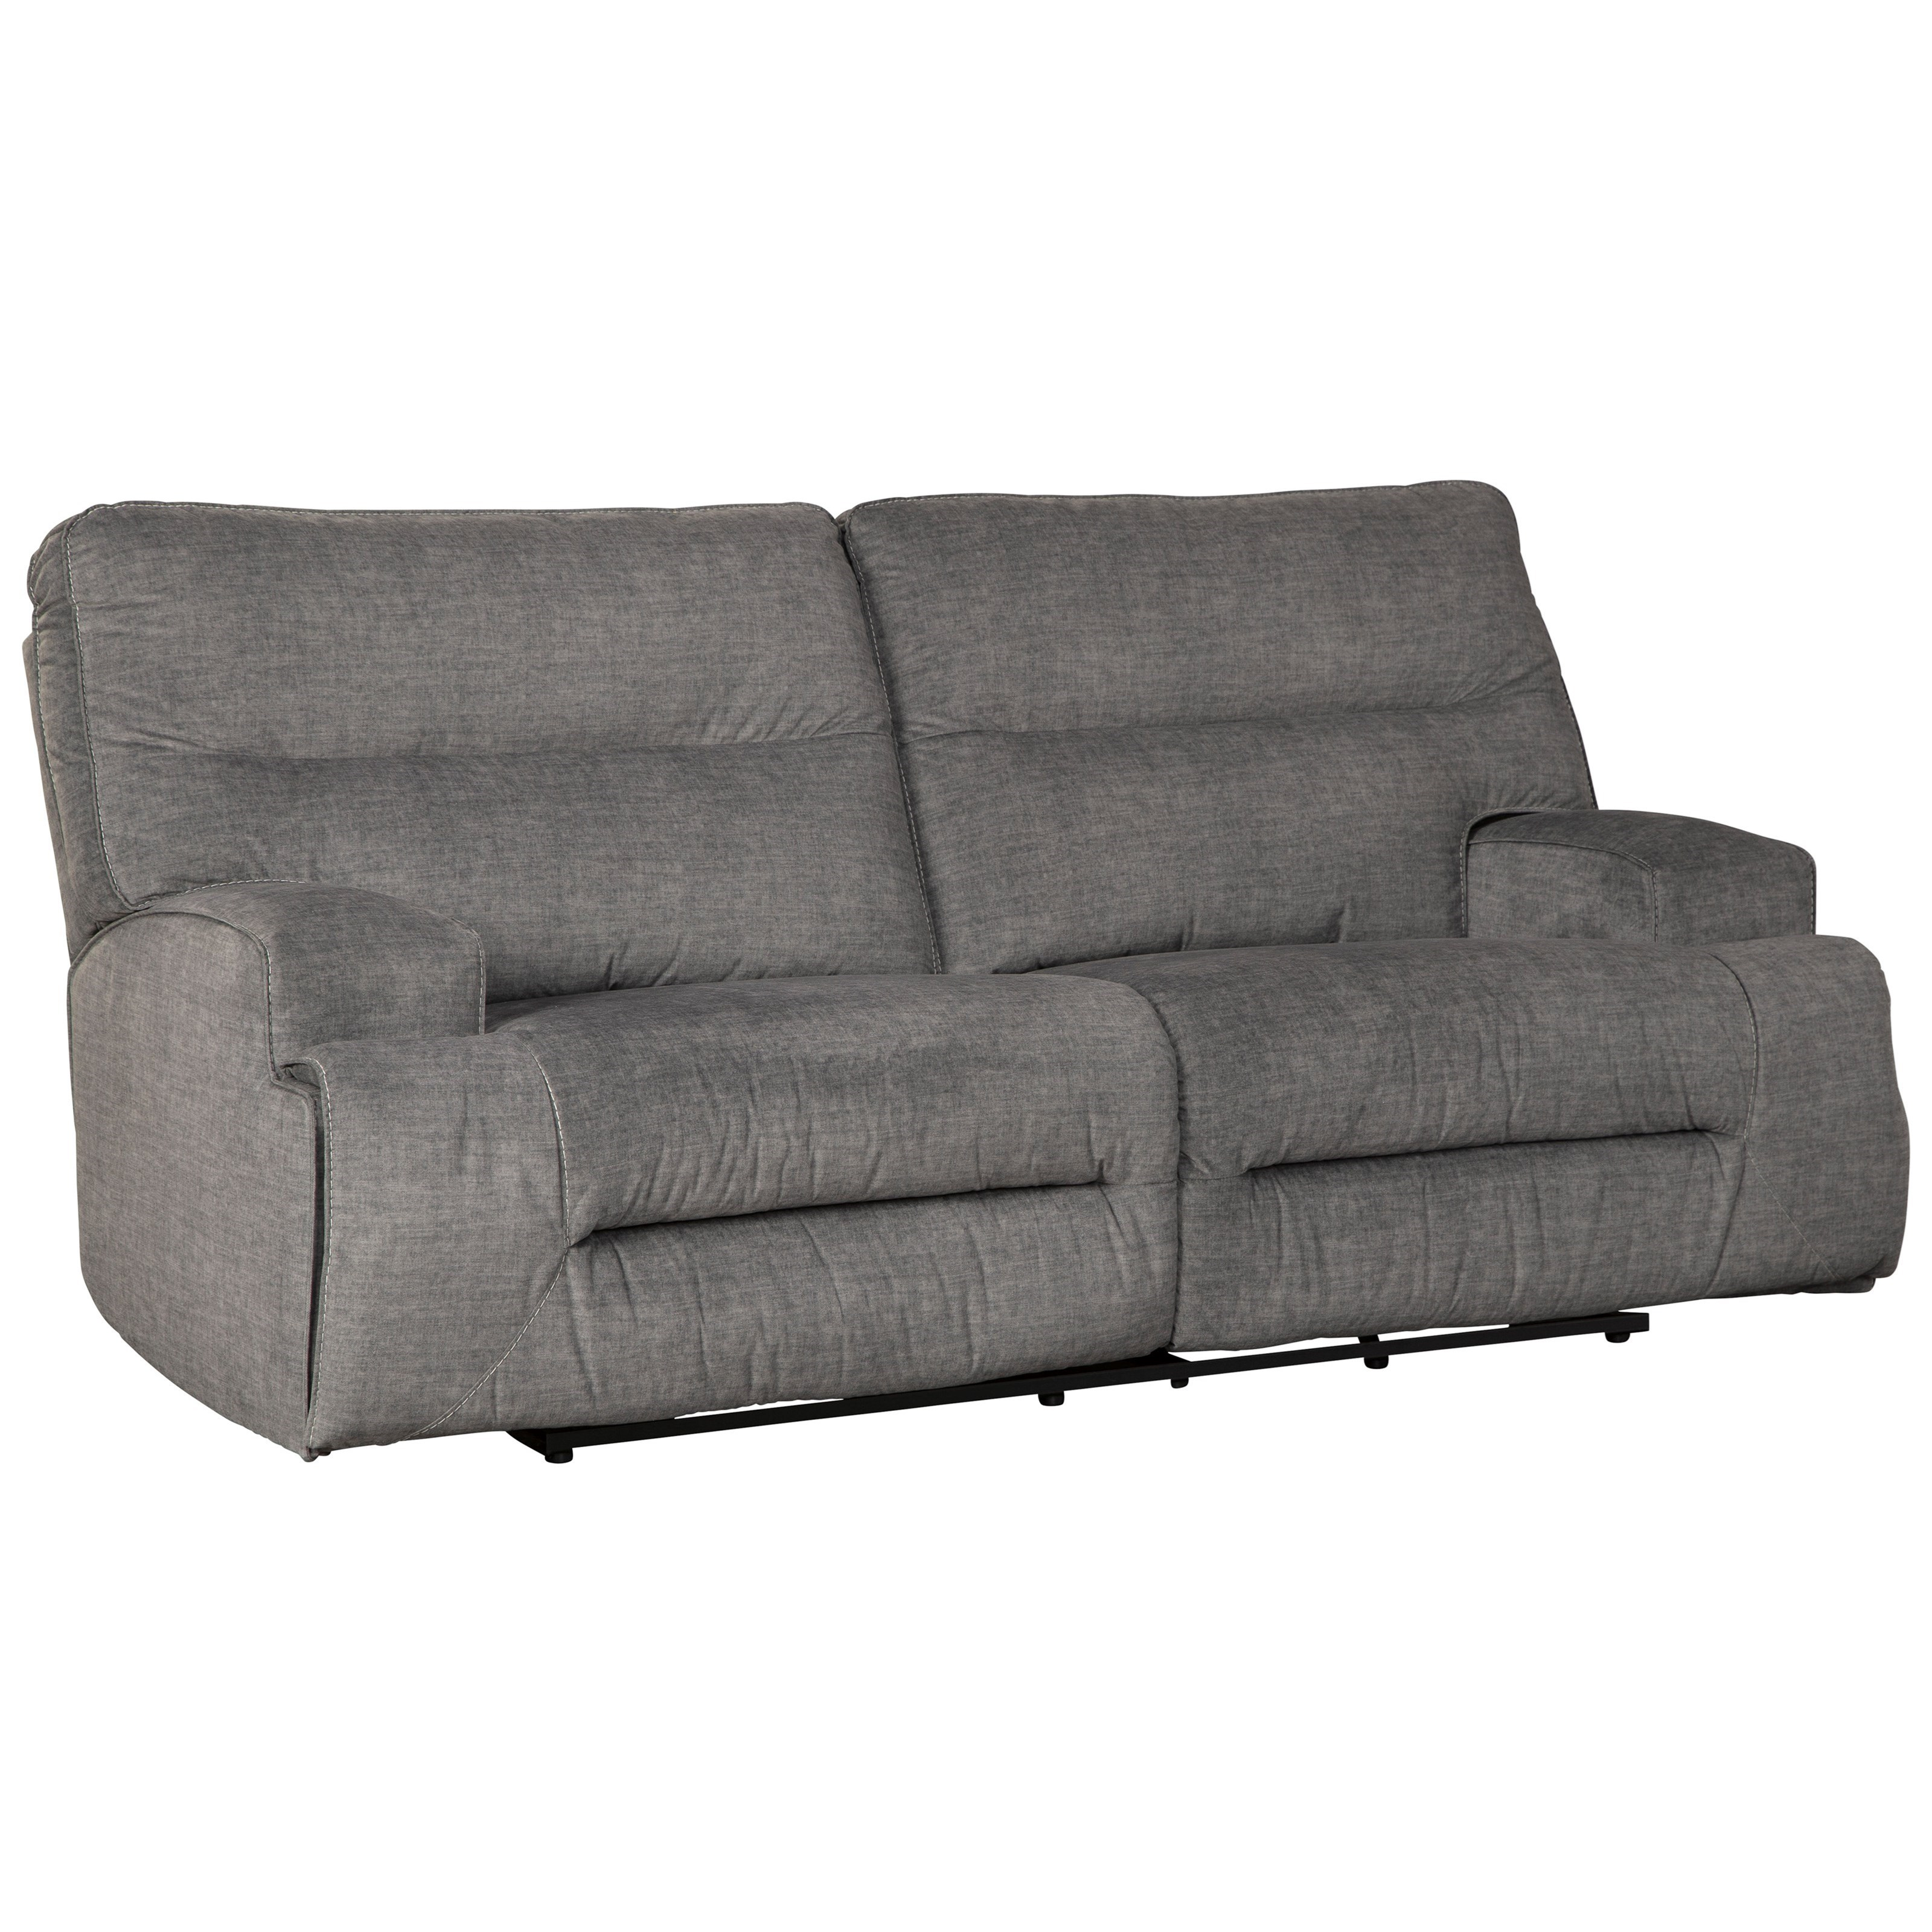 Coombs 2-Seat Reclining Sofa by JB King at EFO Furniture Outlet